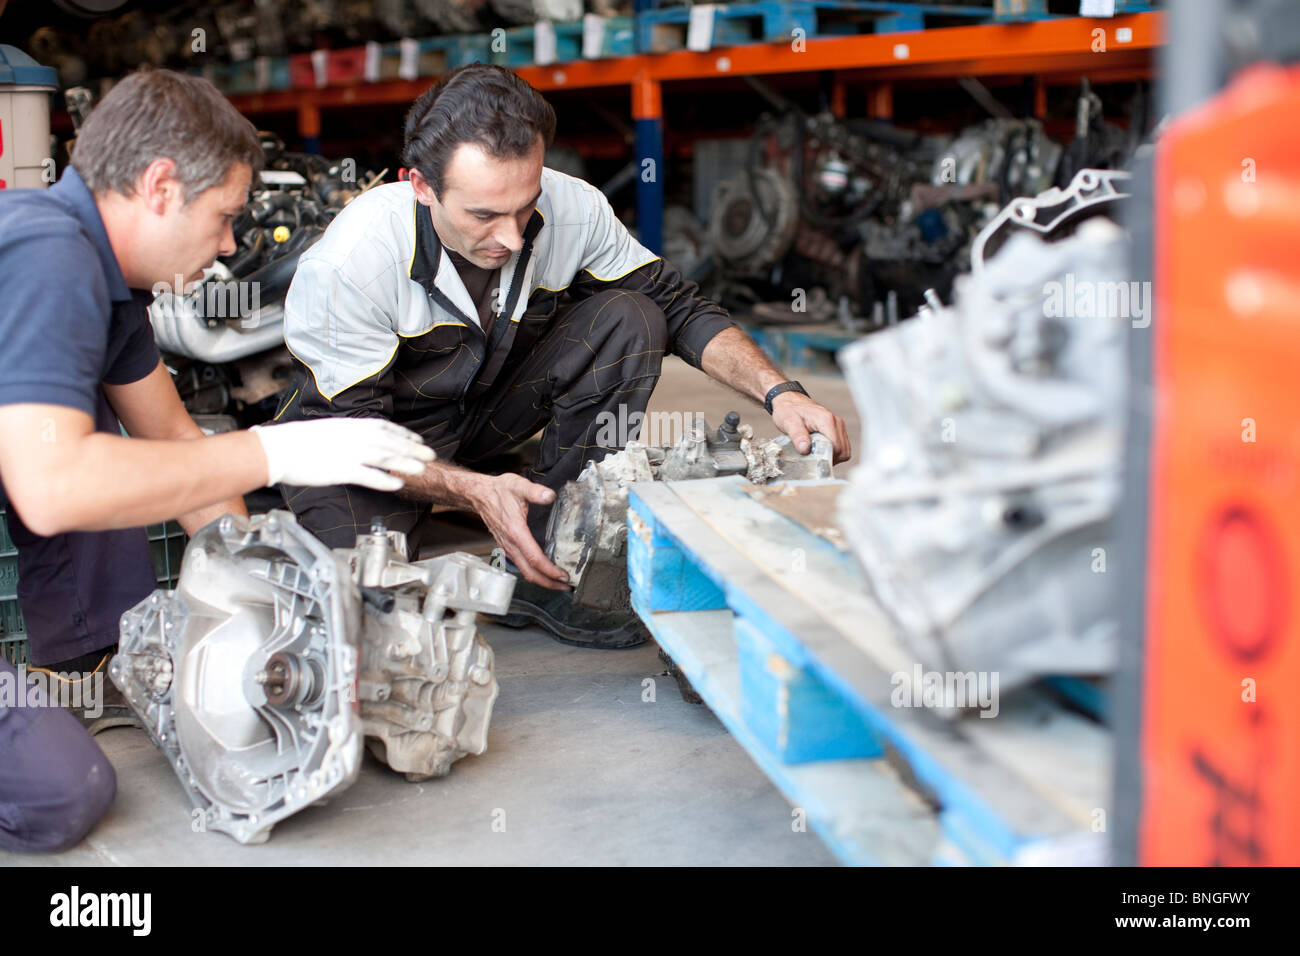 Mechanics - Stock Image